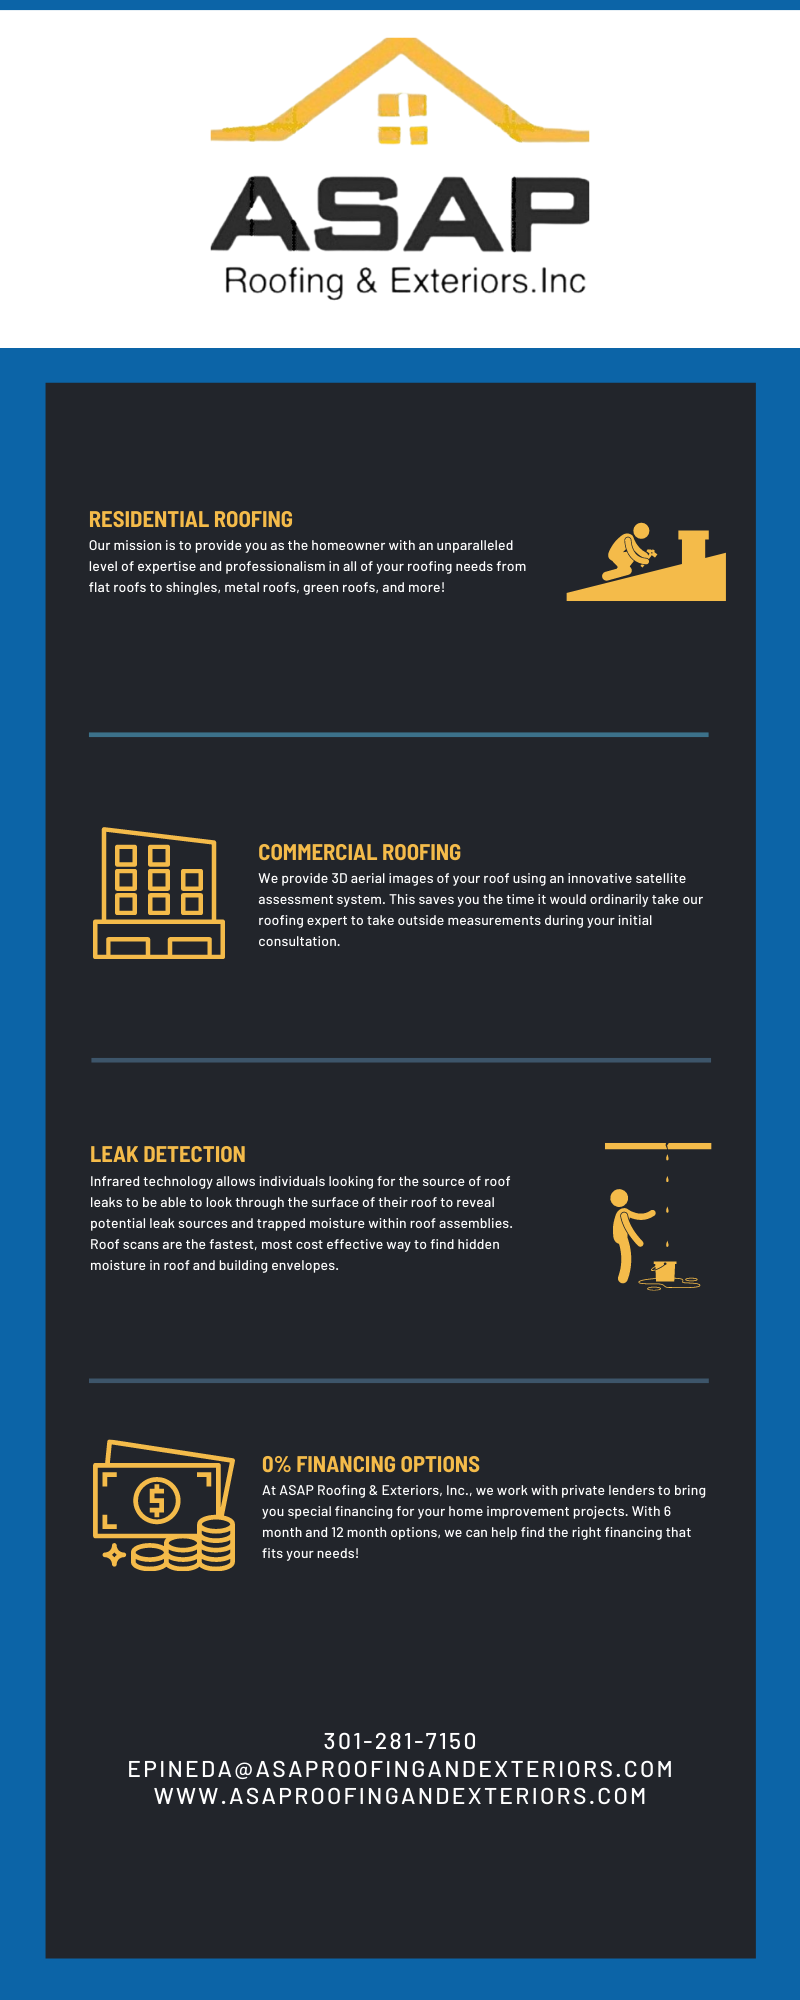 ASAP Roofing Exteriors Infographic August 2021